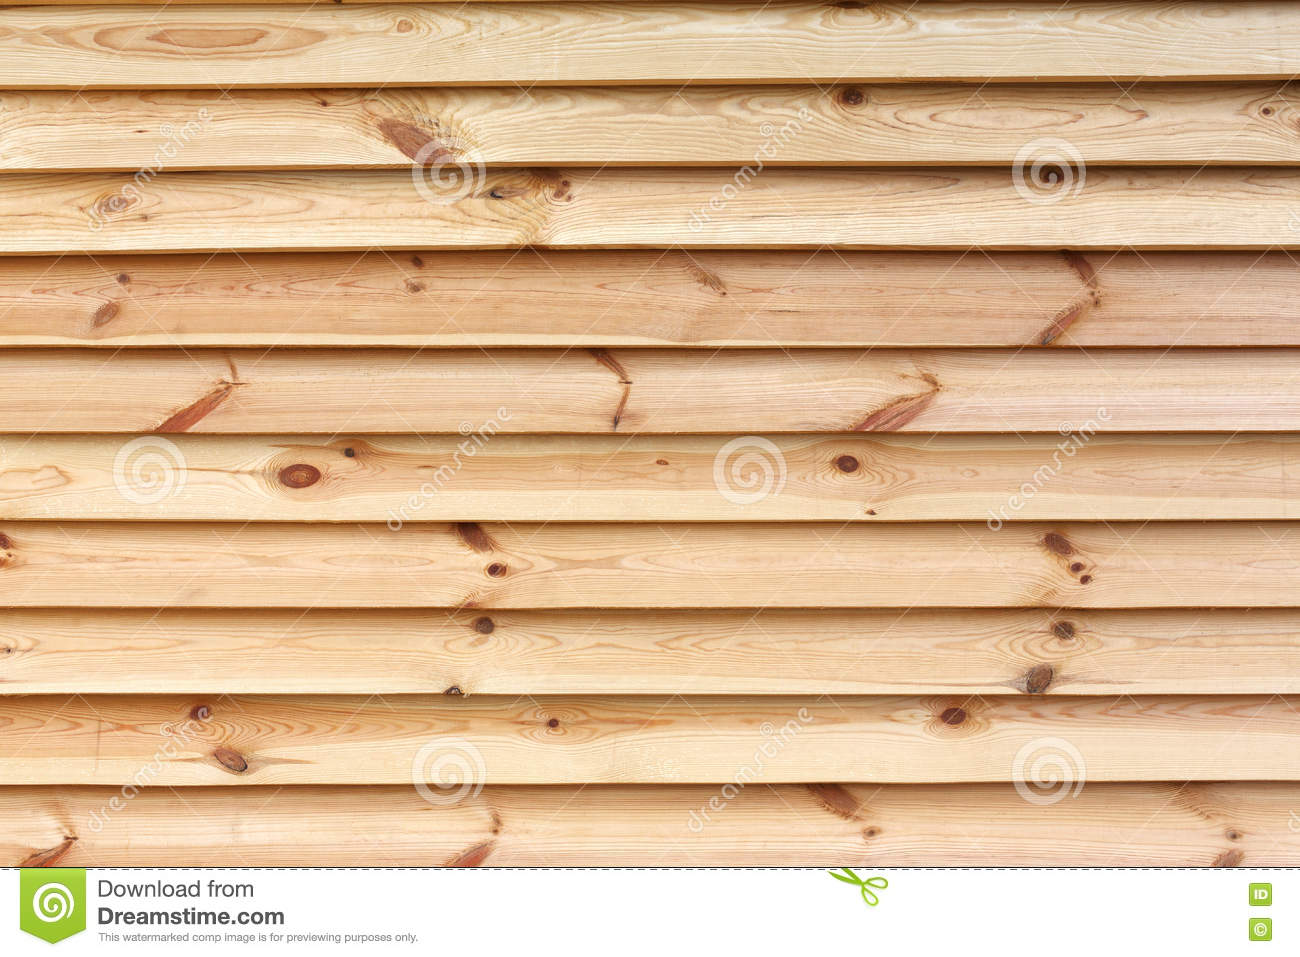 Wood planks kiln dried wooden lumber texture background unpainted unfinished pine furniture surface timber hardwood wall